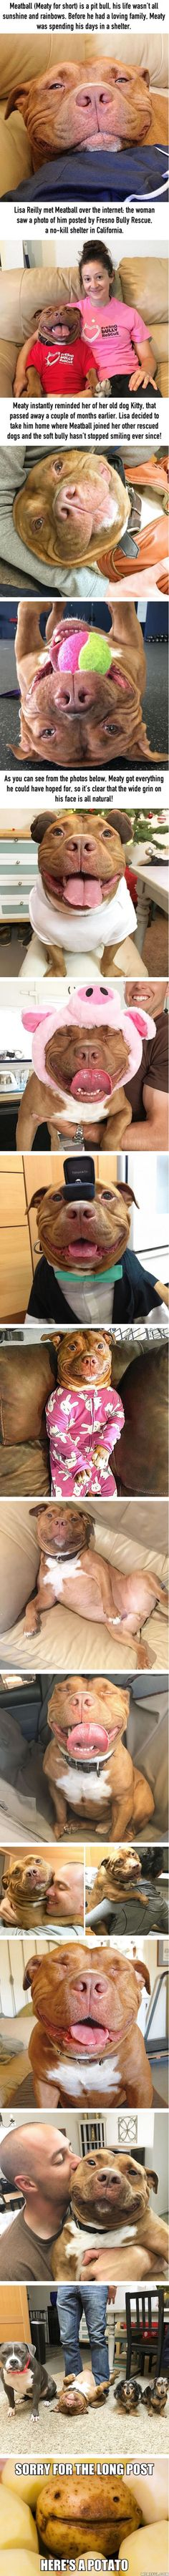 Meet Meaty, The Dog Who Can't Stop Smiling After Being Rescued From A Shelter